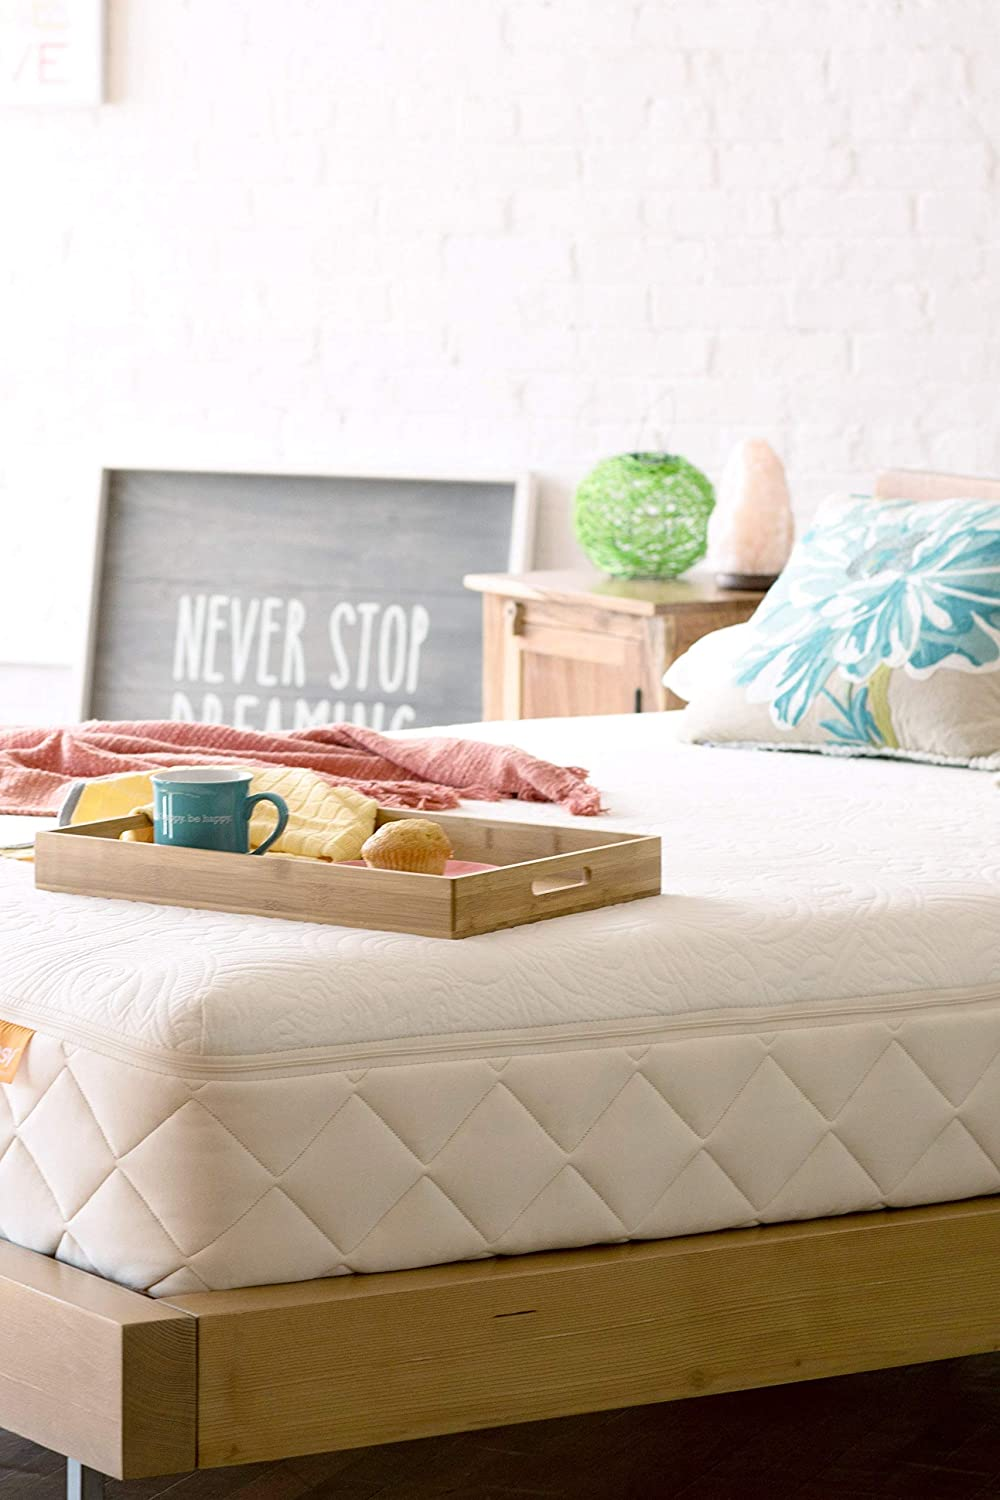 Happsy organic mattress: Better for you and the earth